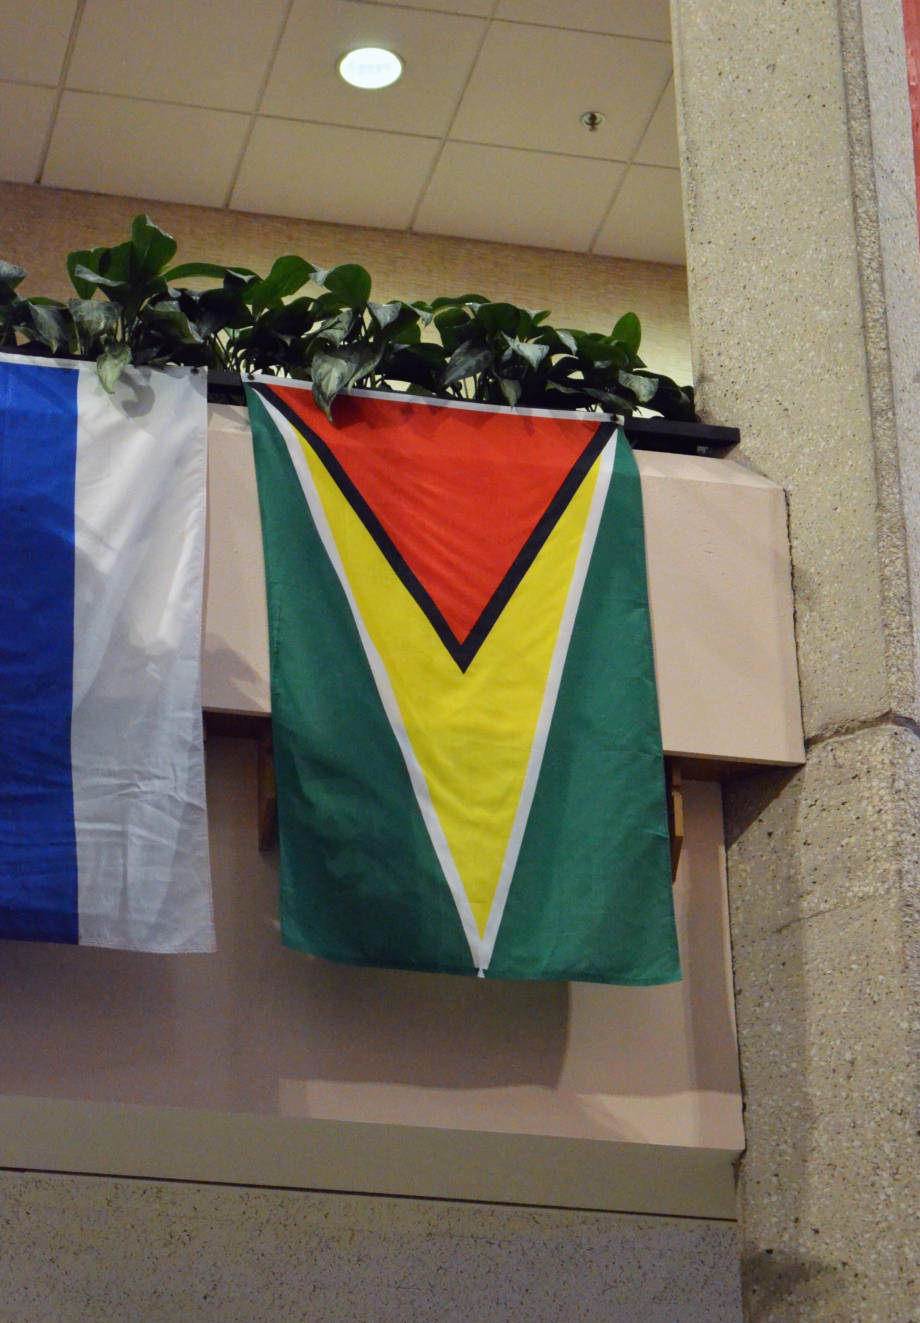 The flag of Guyana was among those spotted at The World Food Prize.